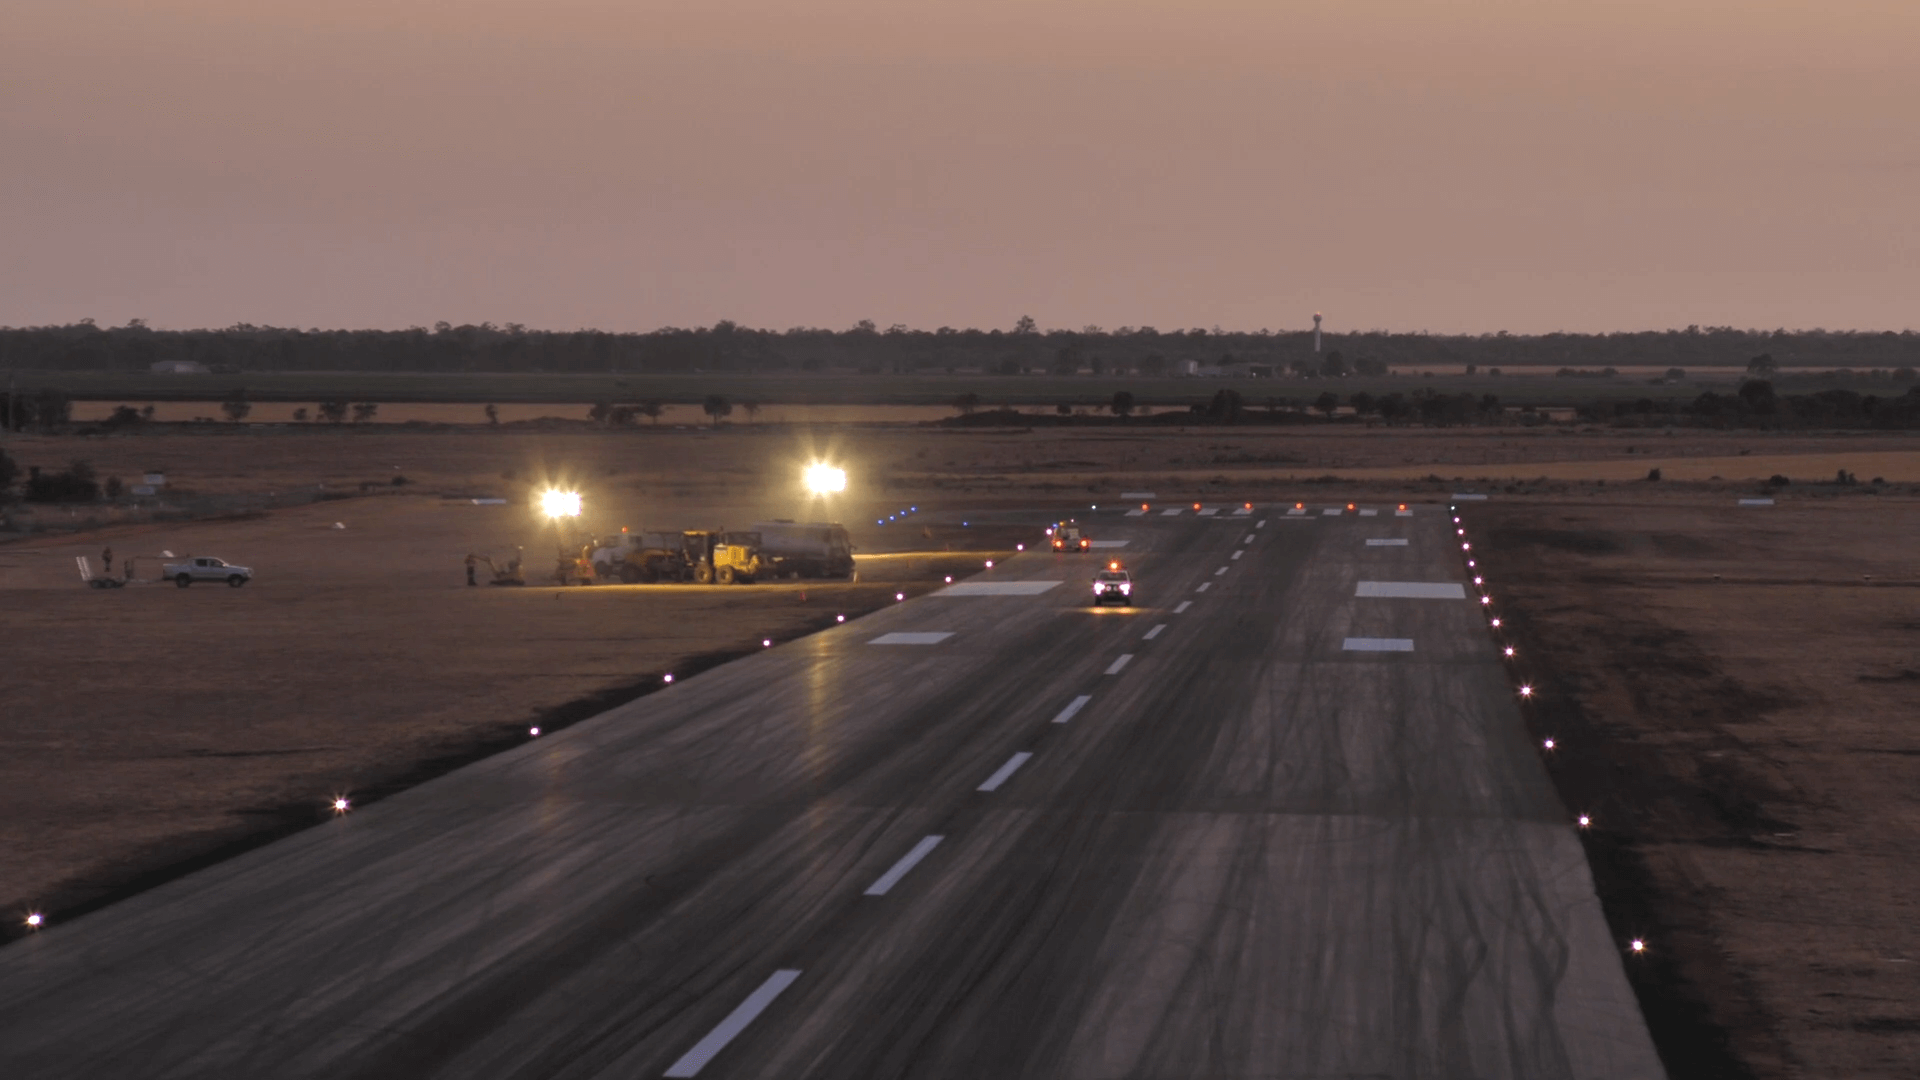 Emerald Airport Leading the Way in Runway Pavement Design